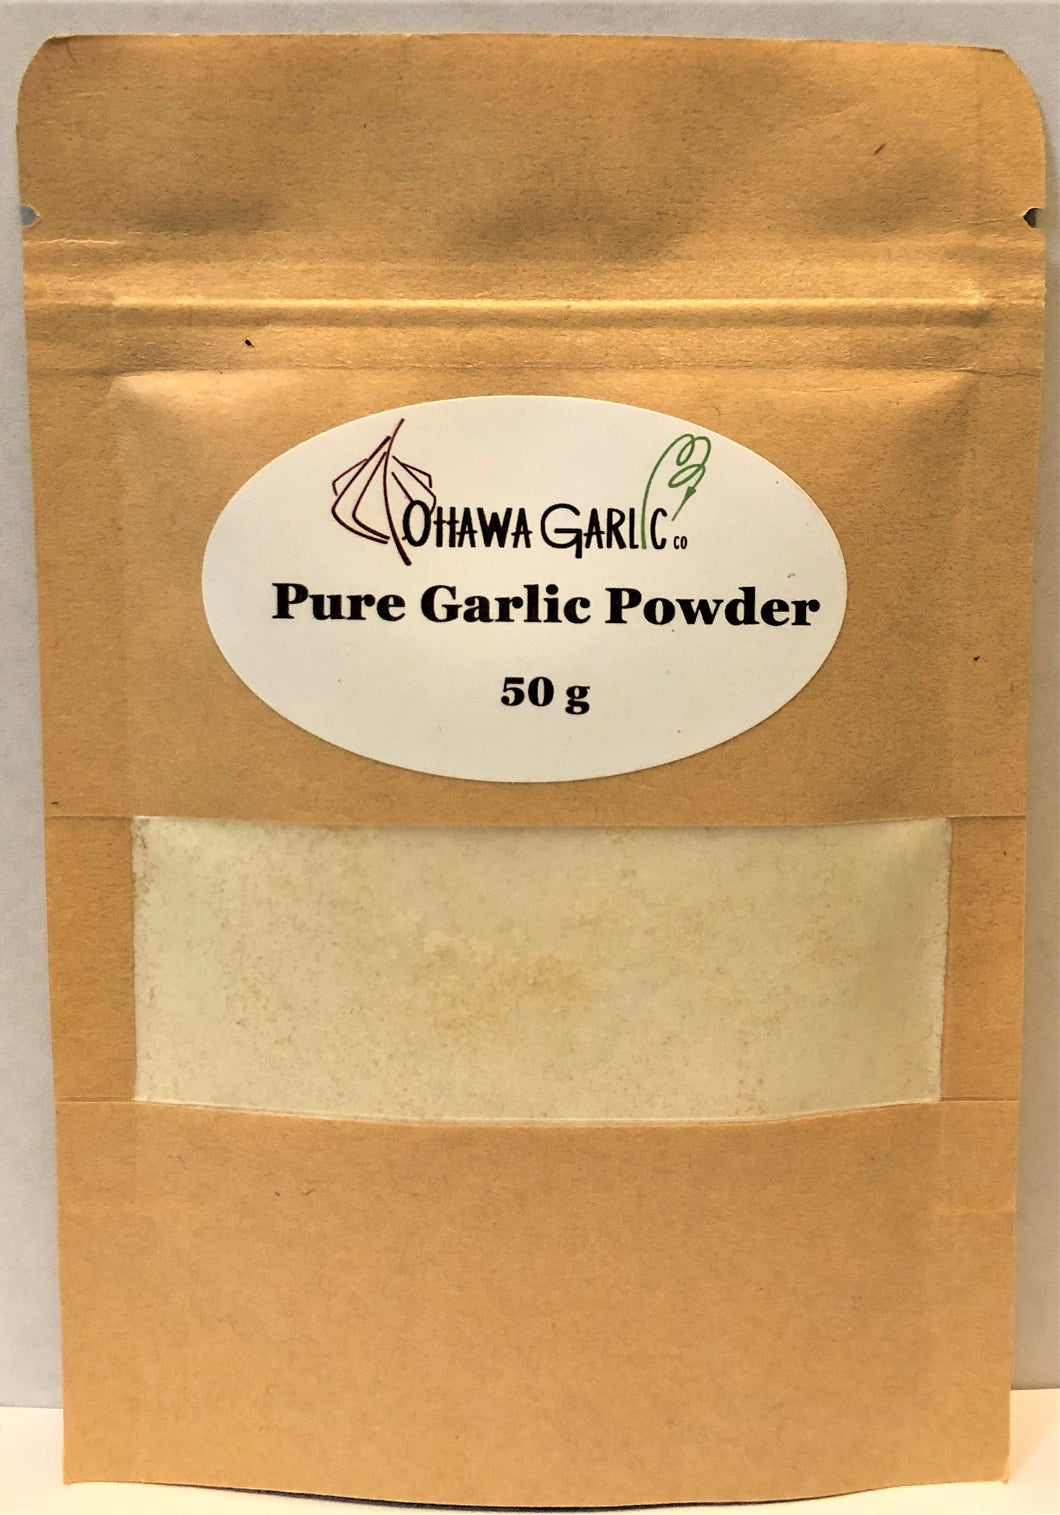 Pure Garlic Powder - 50g Pouch